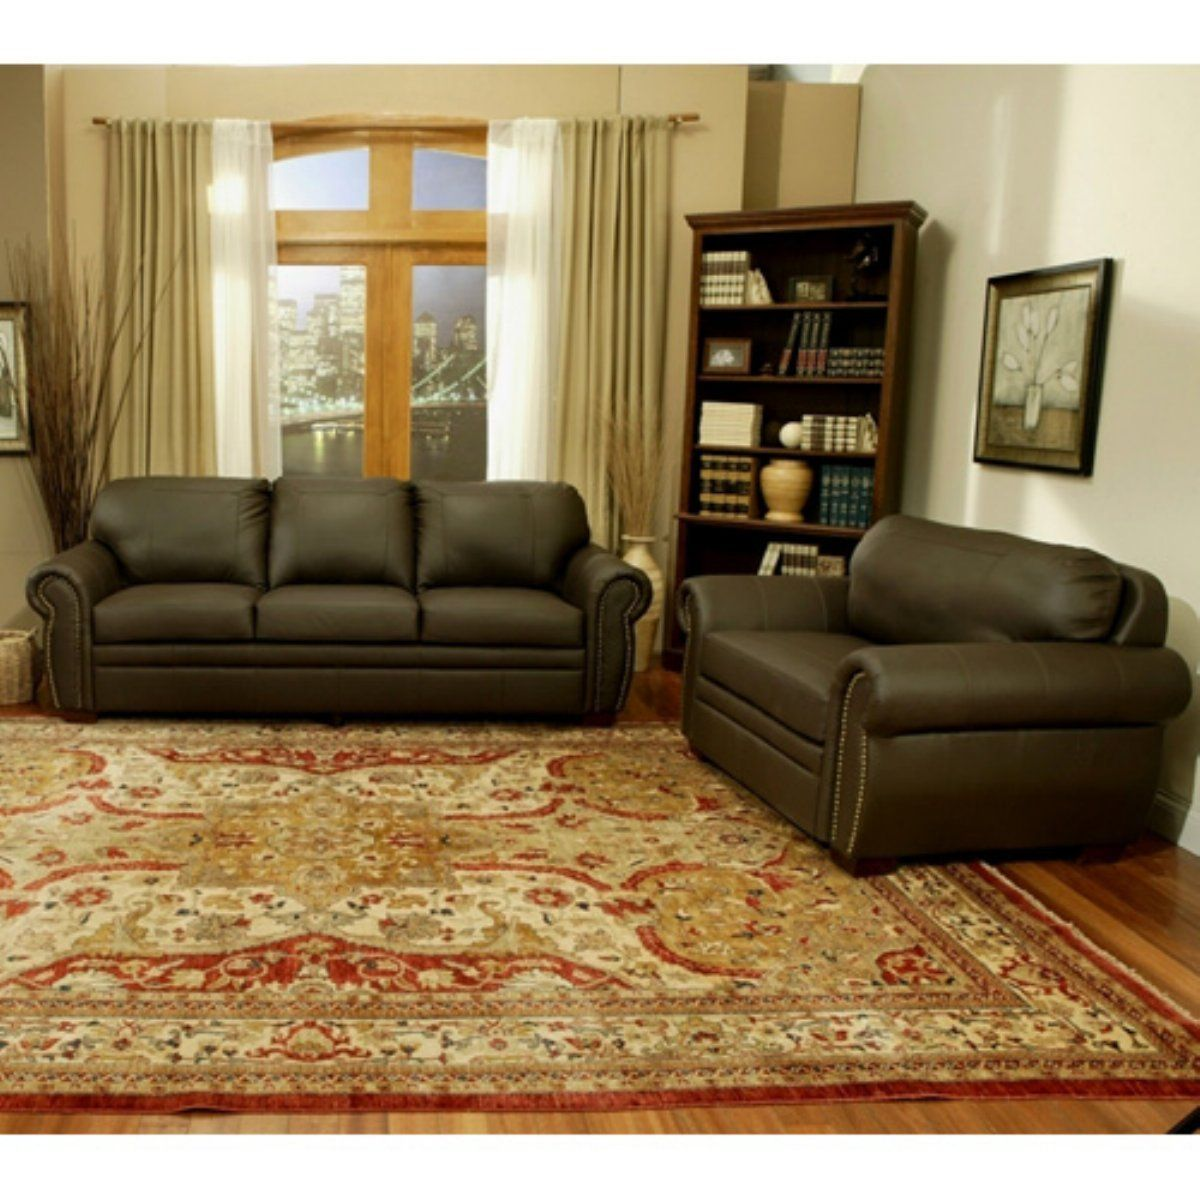 Bellavista Dark Brown Premium Italian Leather Oversized Sofa And Chair -  Familiarize Yourself With The Generously